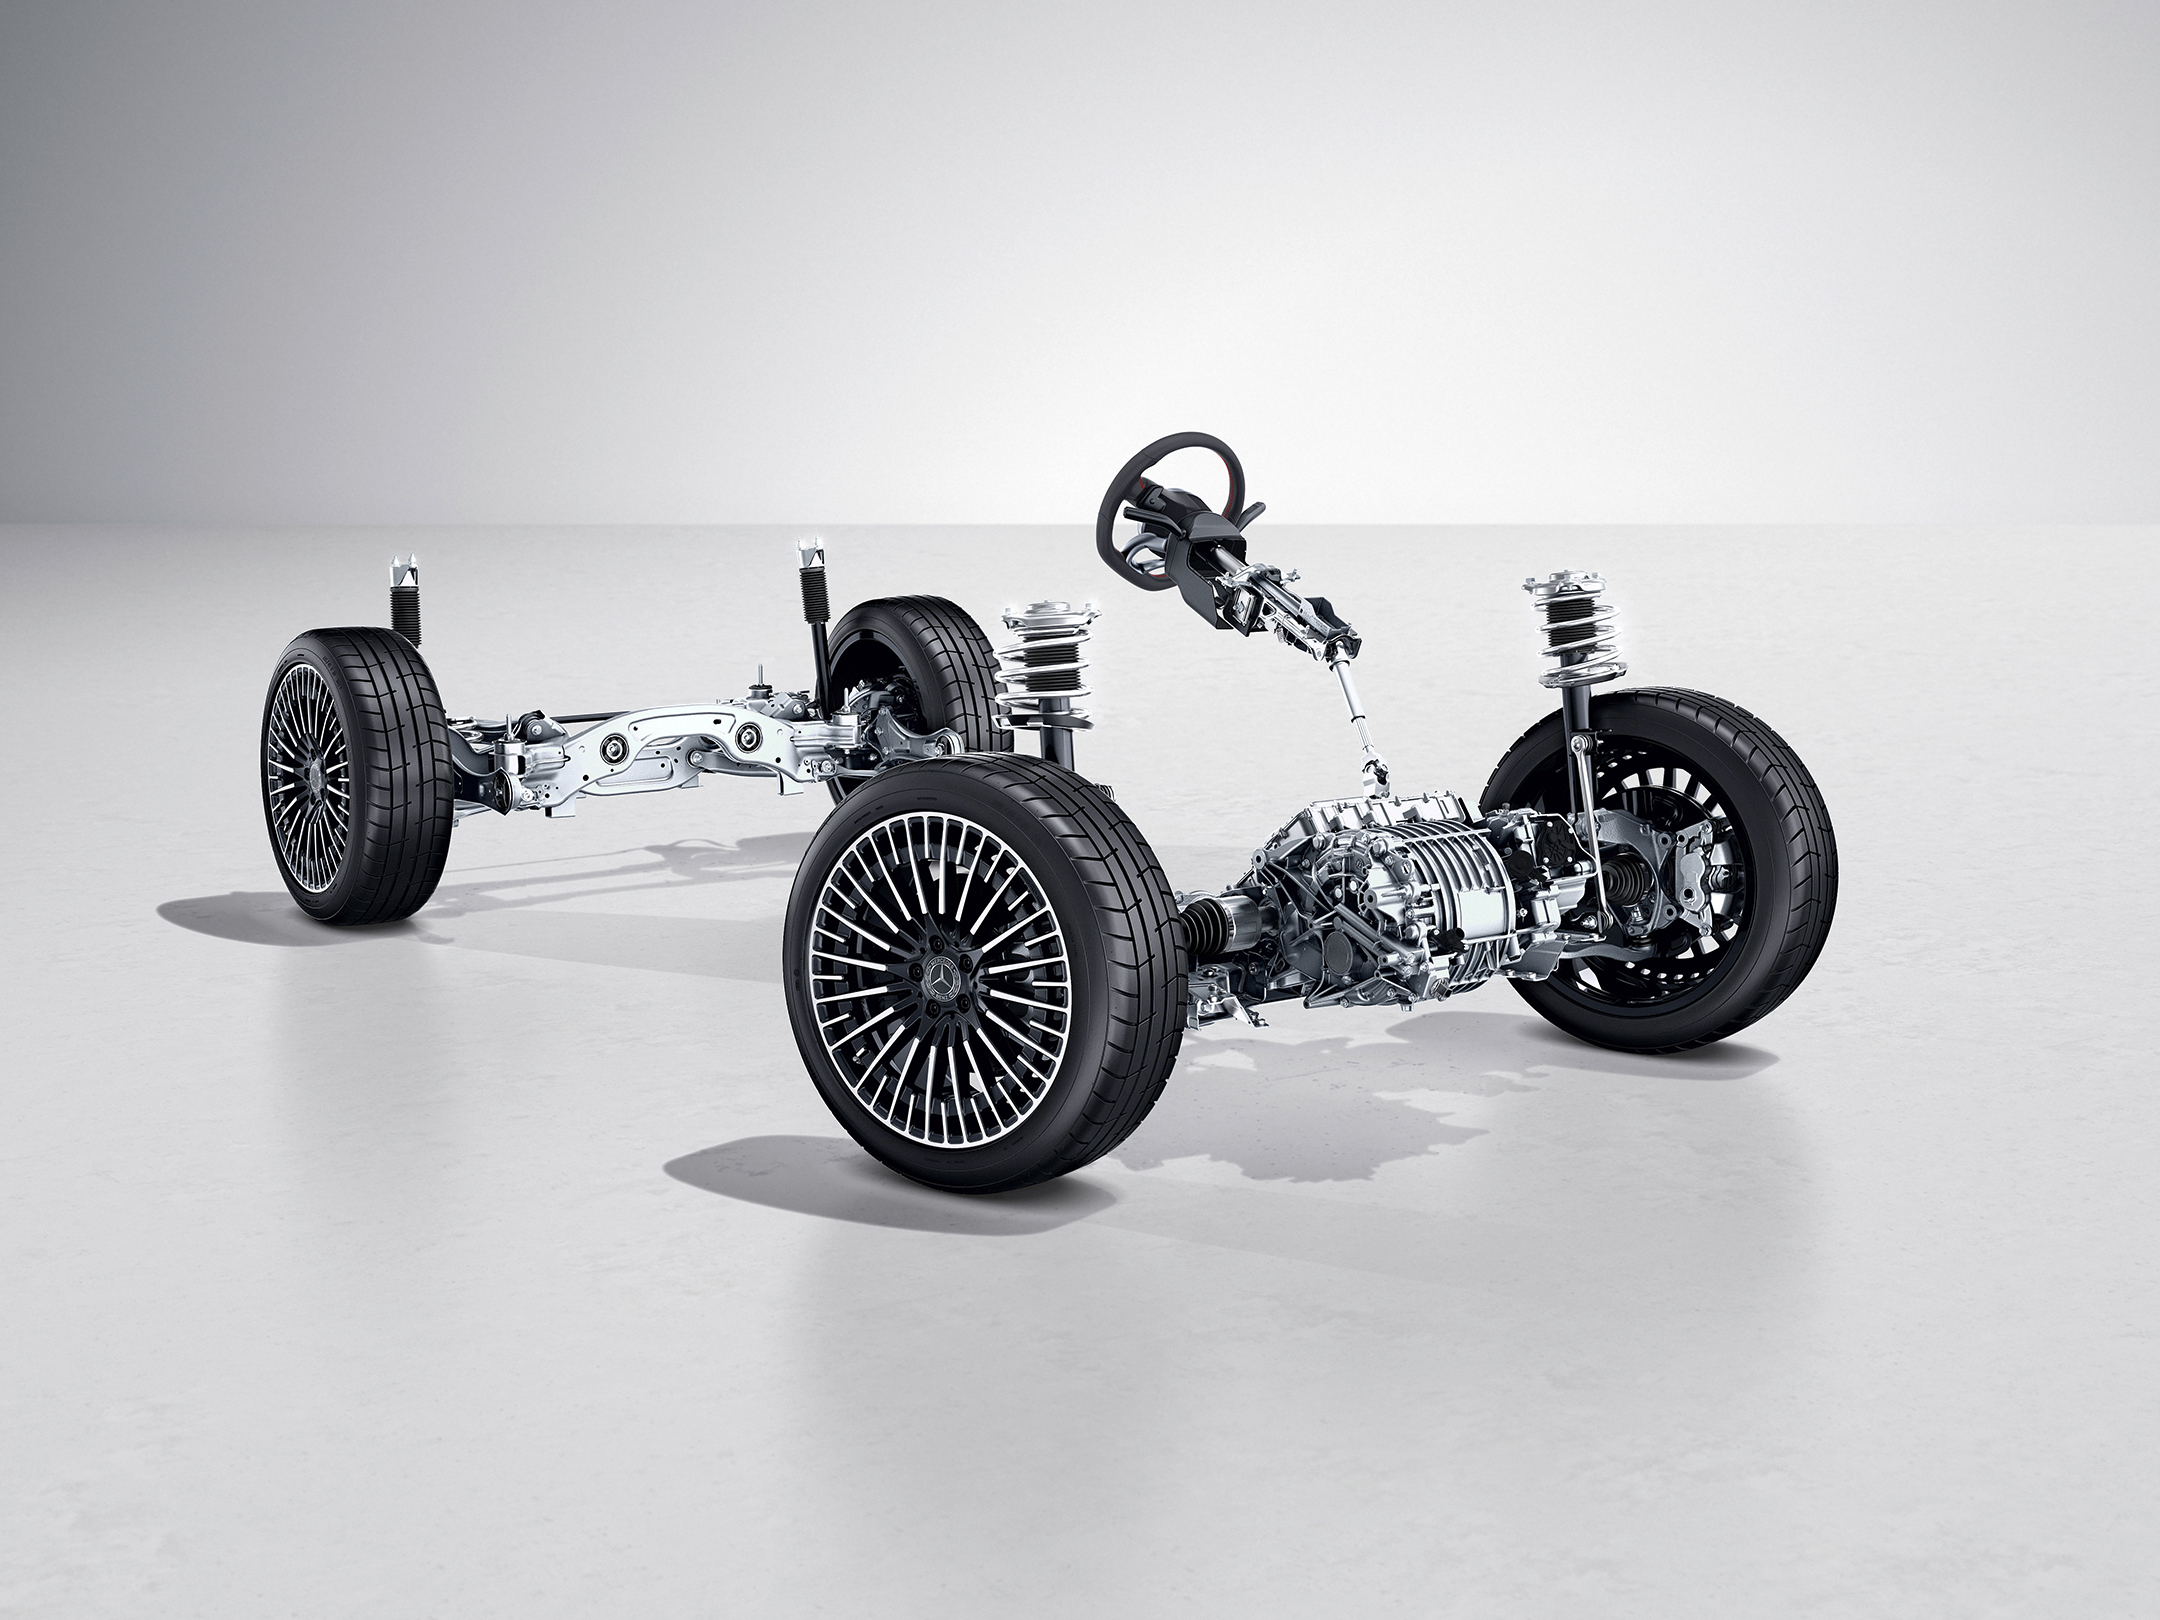 Mercedes EQA 250 AMG Line - 2021 - chassis / châssis - suspension / suspension - steering / volant